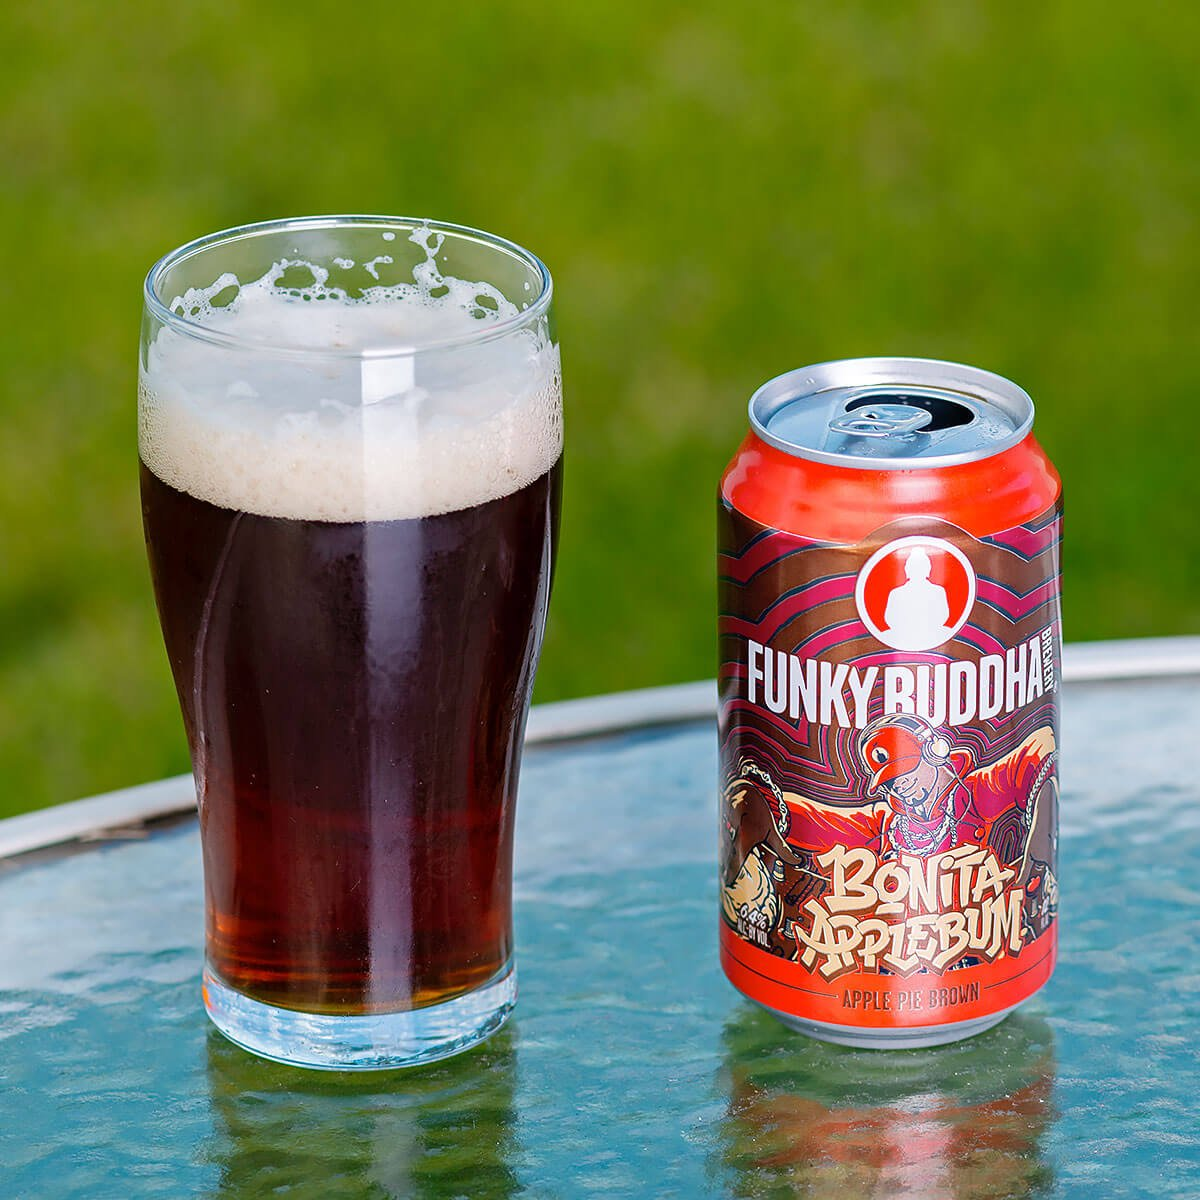 Bonita Applebum is an American Brown Ale by Funky Buddha Brewery that deftly balances baked bread, tart apple, cinnamon, and vanilla.